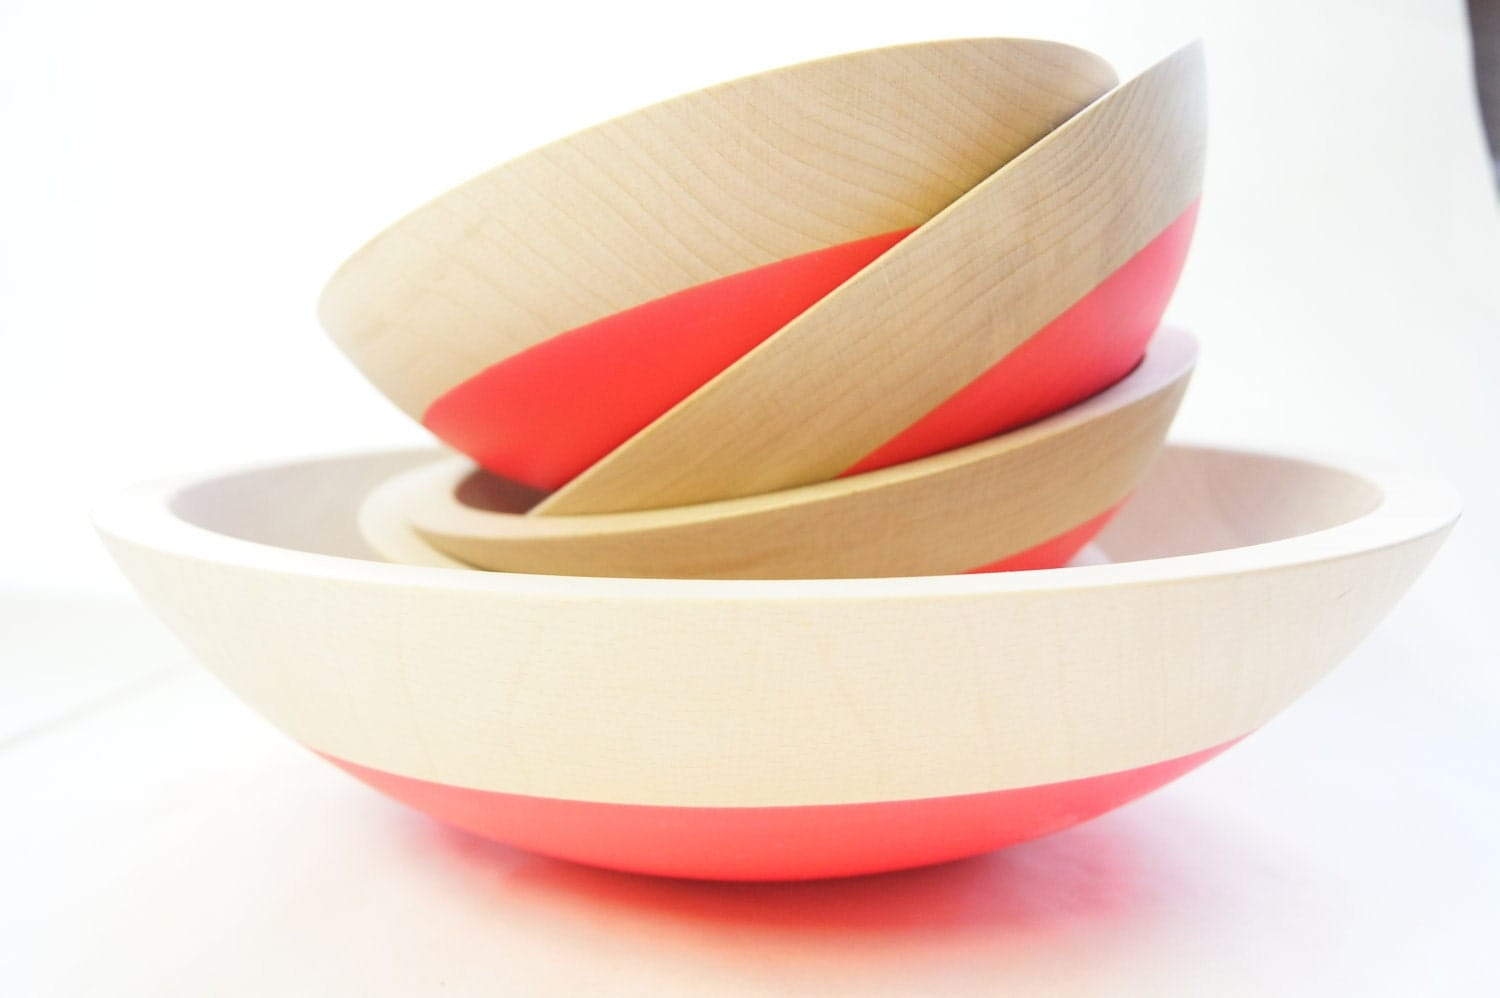 Wooden Salad Bowl Set of 5, Neon Pink, Summer Party, Picnic,